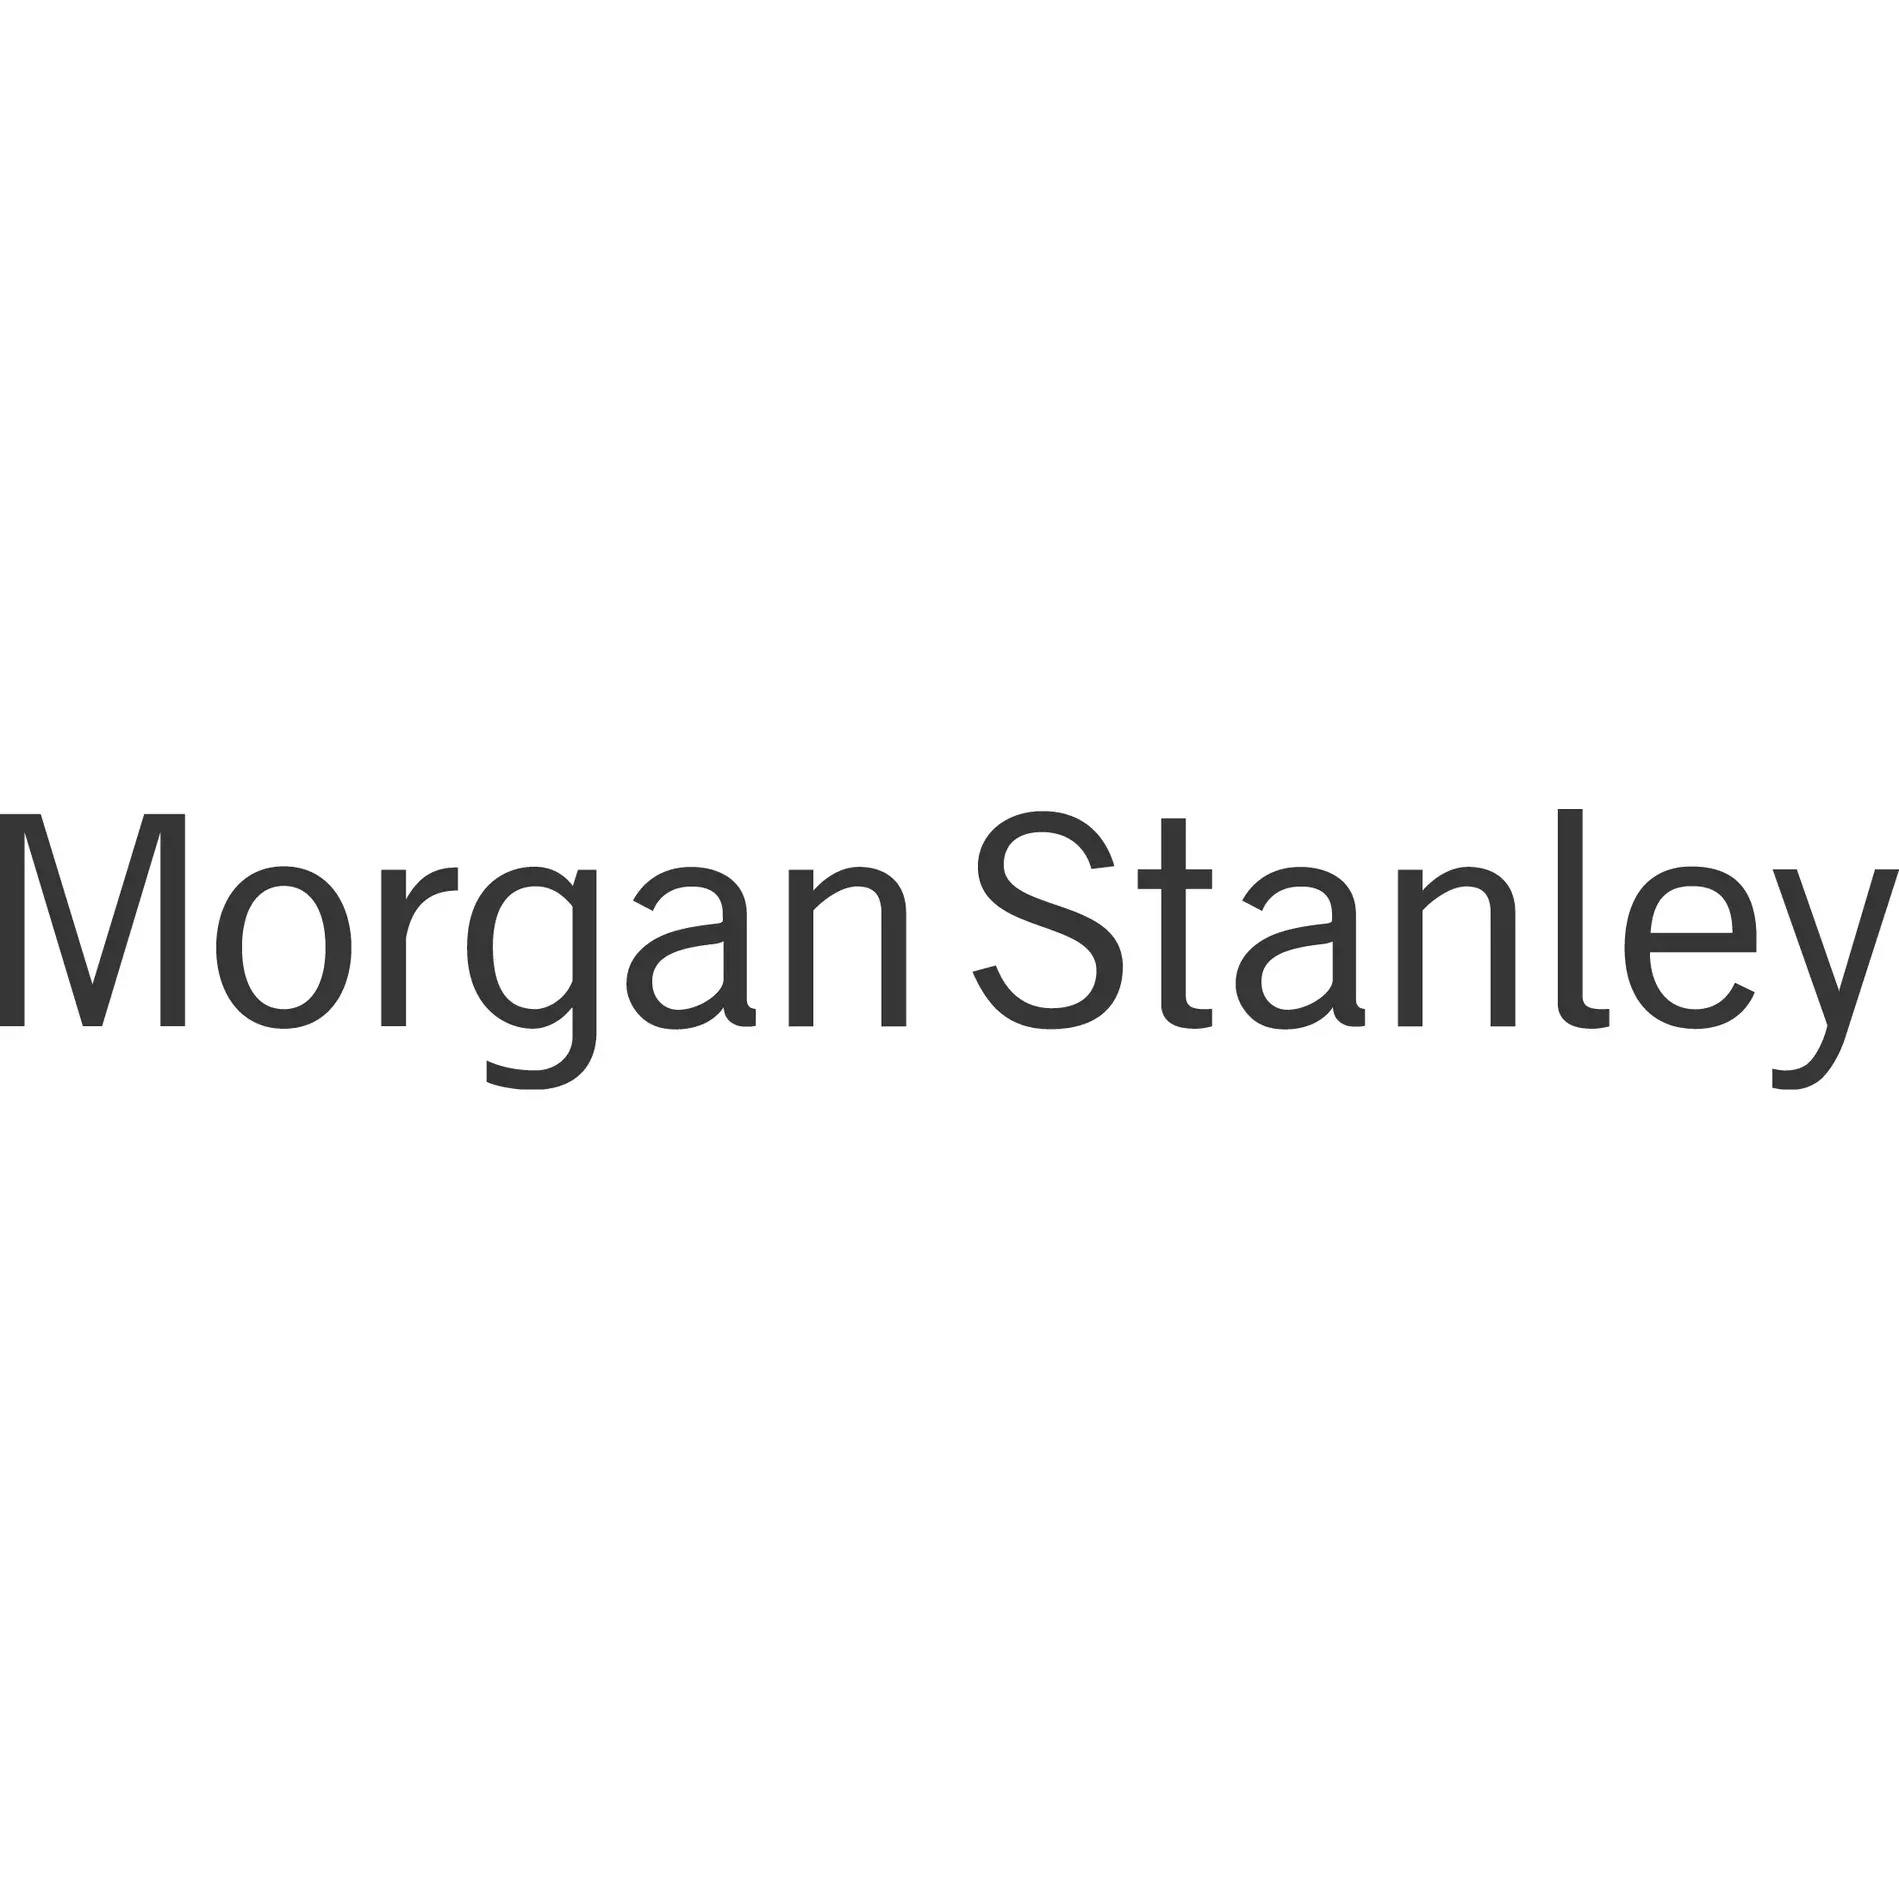 Thos. J Meltzer - Morgan Stanley | Financial Advisor in Indianapolis,Indiana